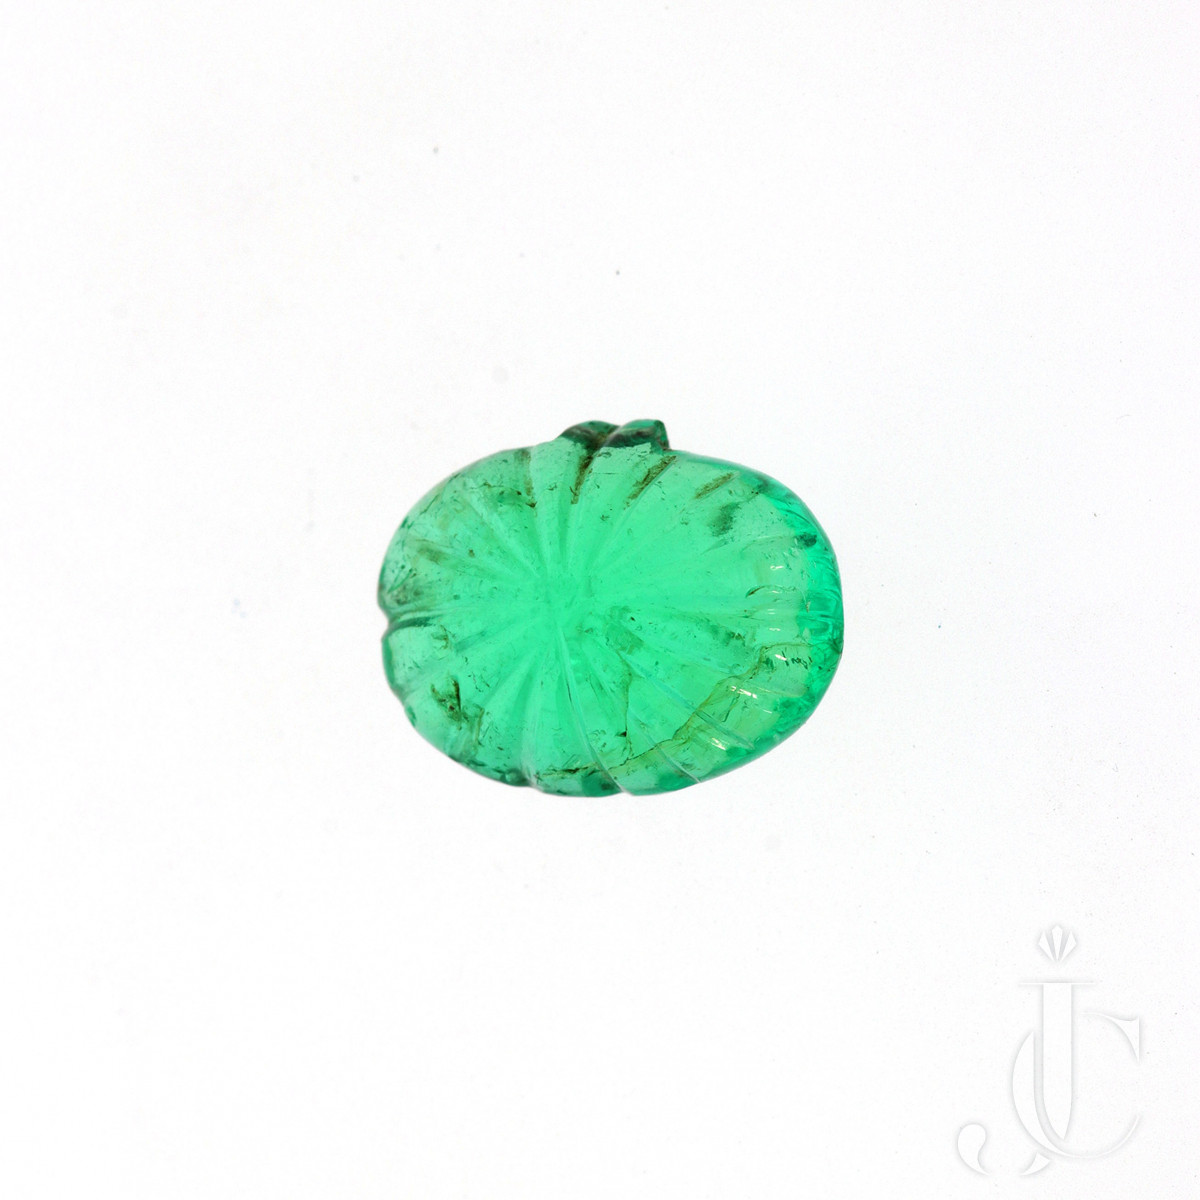 5,79 ct carved Emerald